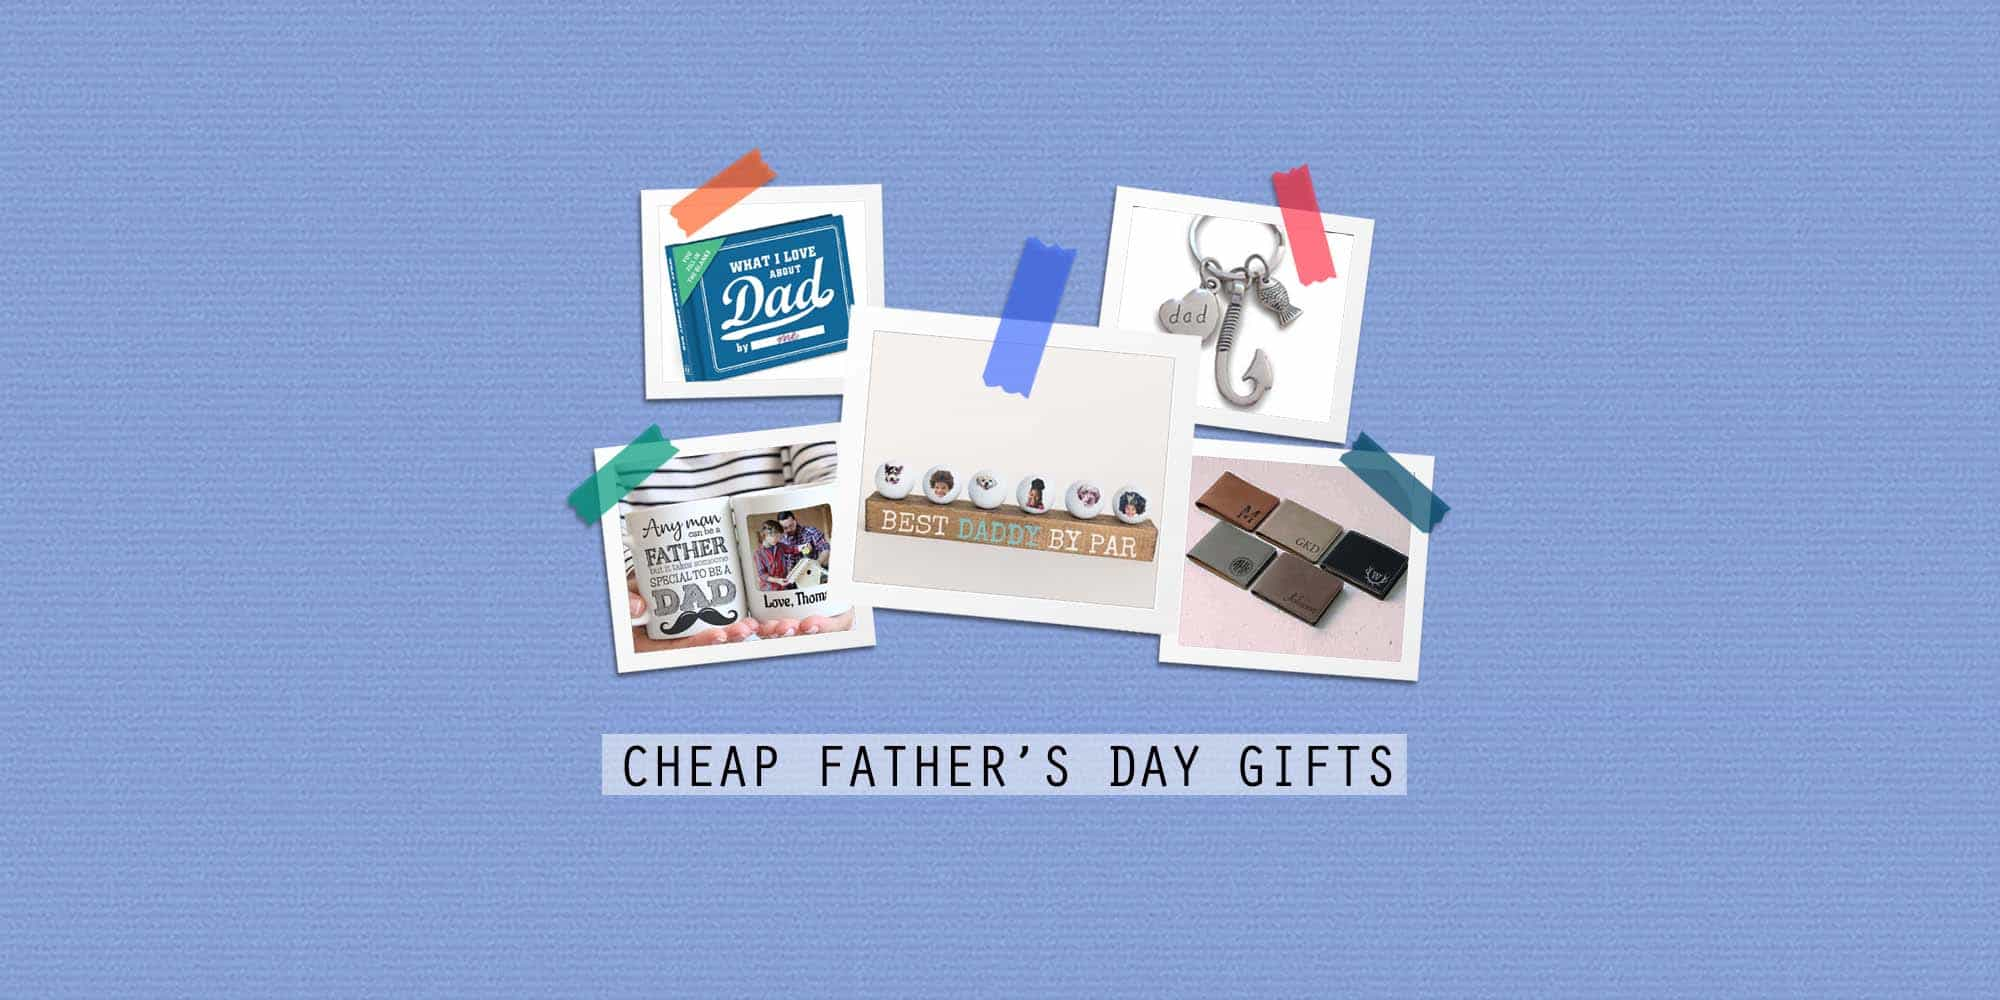 Cheap Father's Day Gifts 2021: 30+ Inexpensive (But Cool) Ideas